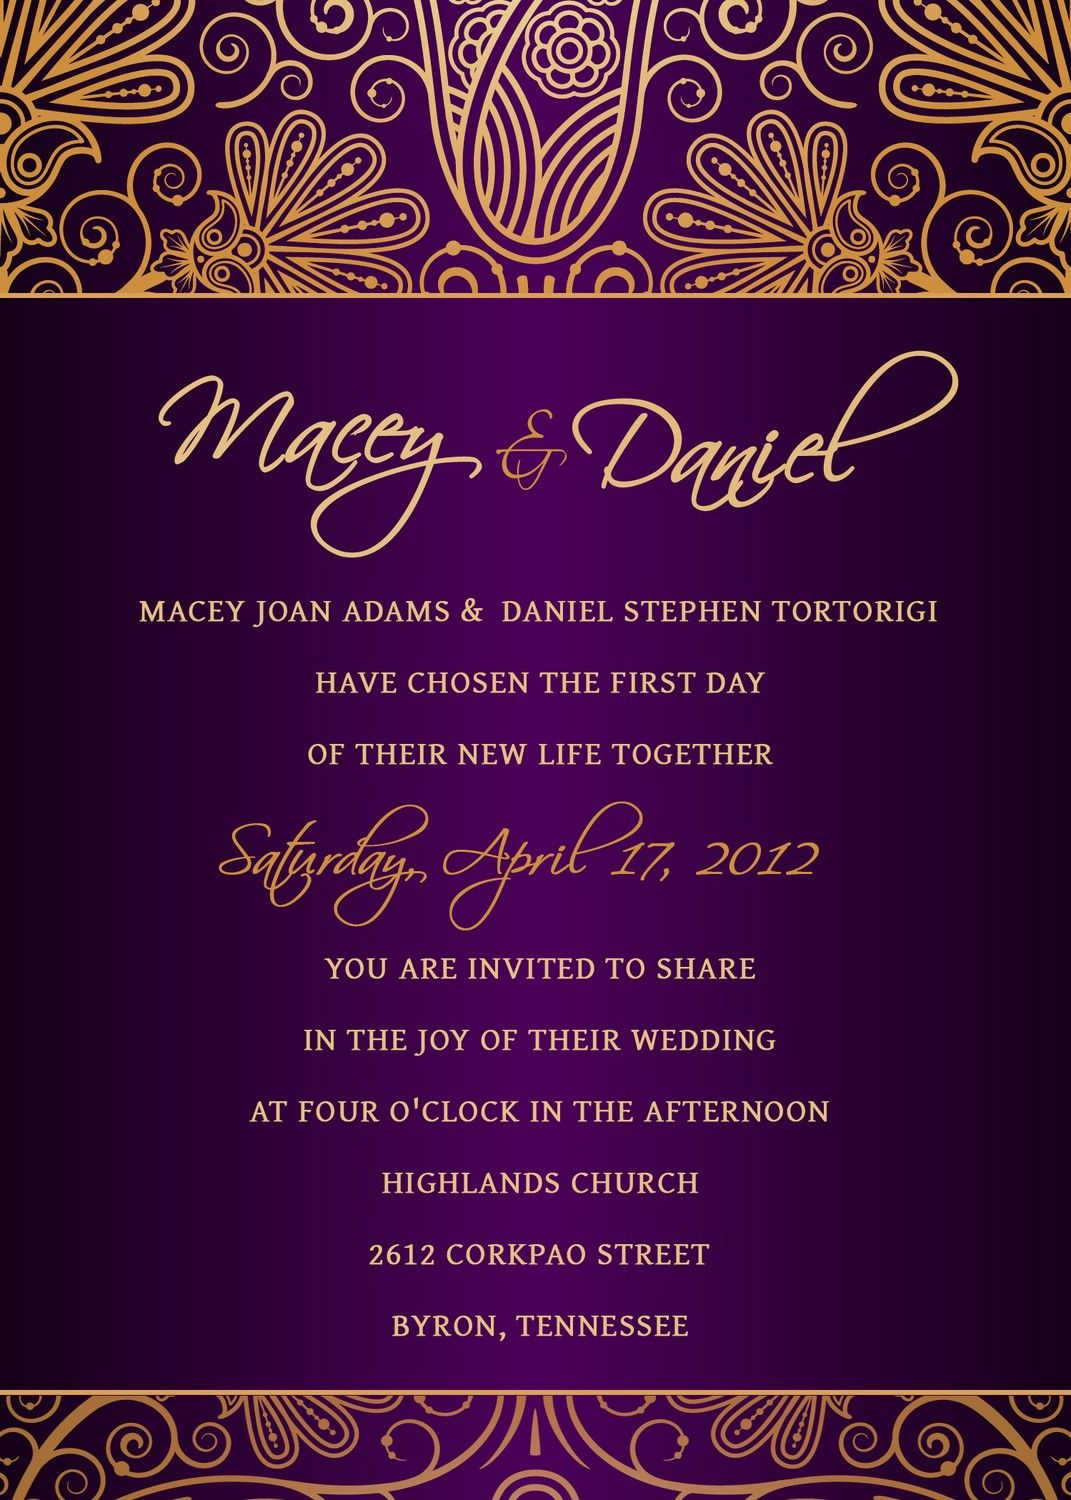 purple and gold wedding Personalized Royal purple and gold damask wedding invitation Available at Boardman Printing